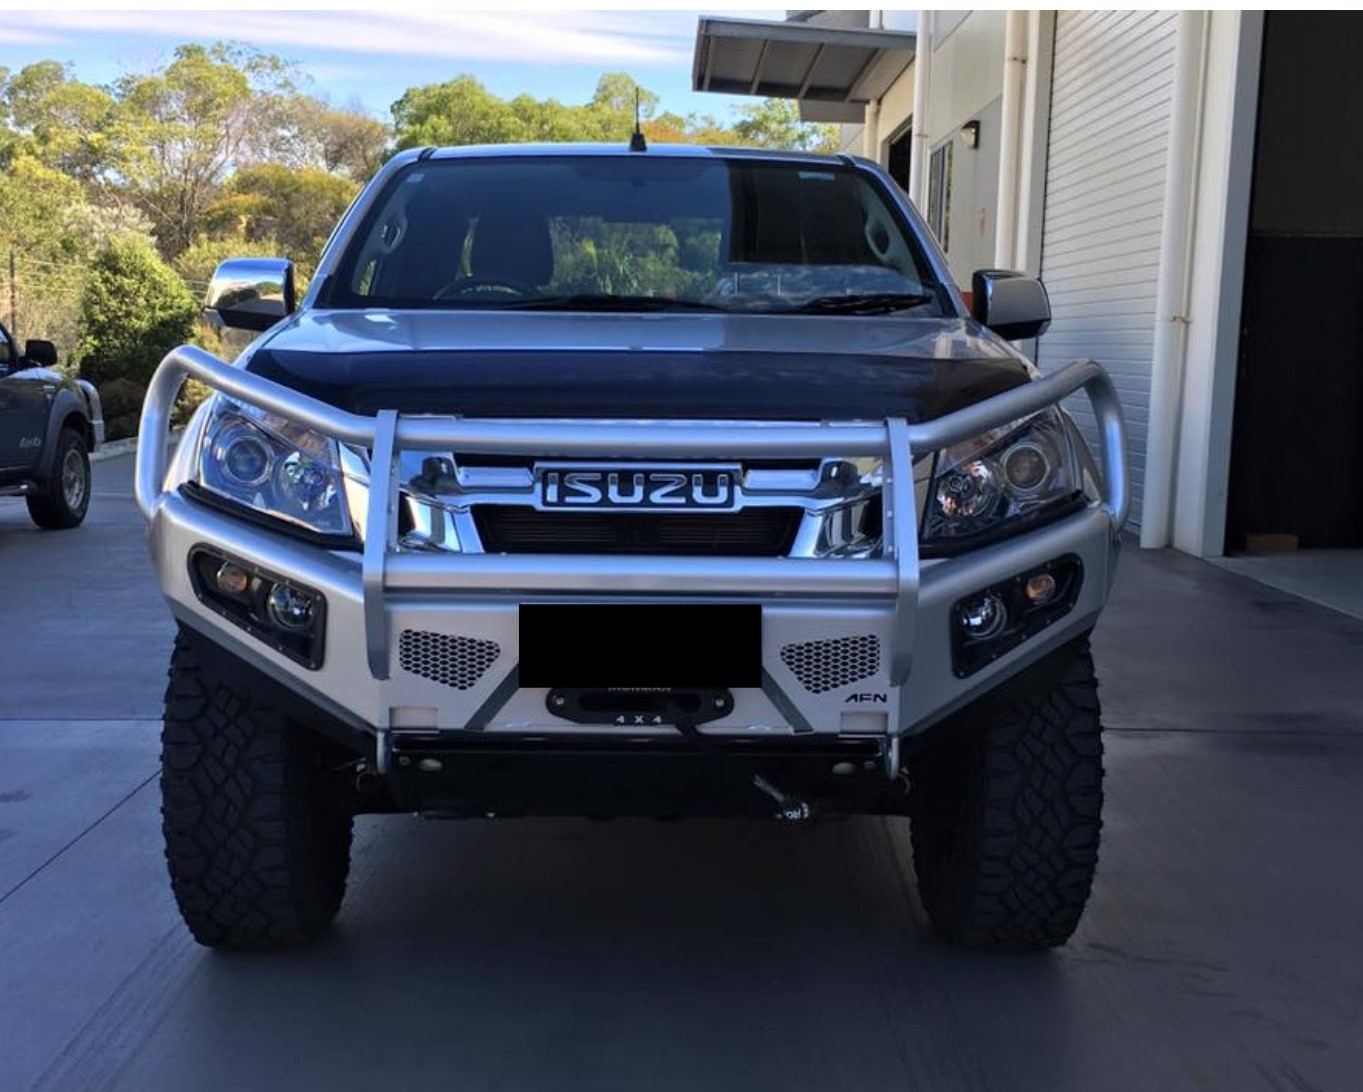 The World's Best Looking Bullbars arriving in New Zealand soon!